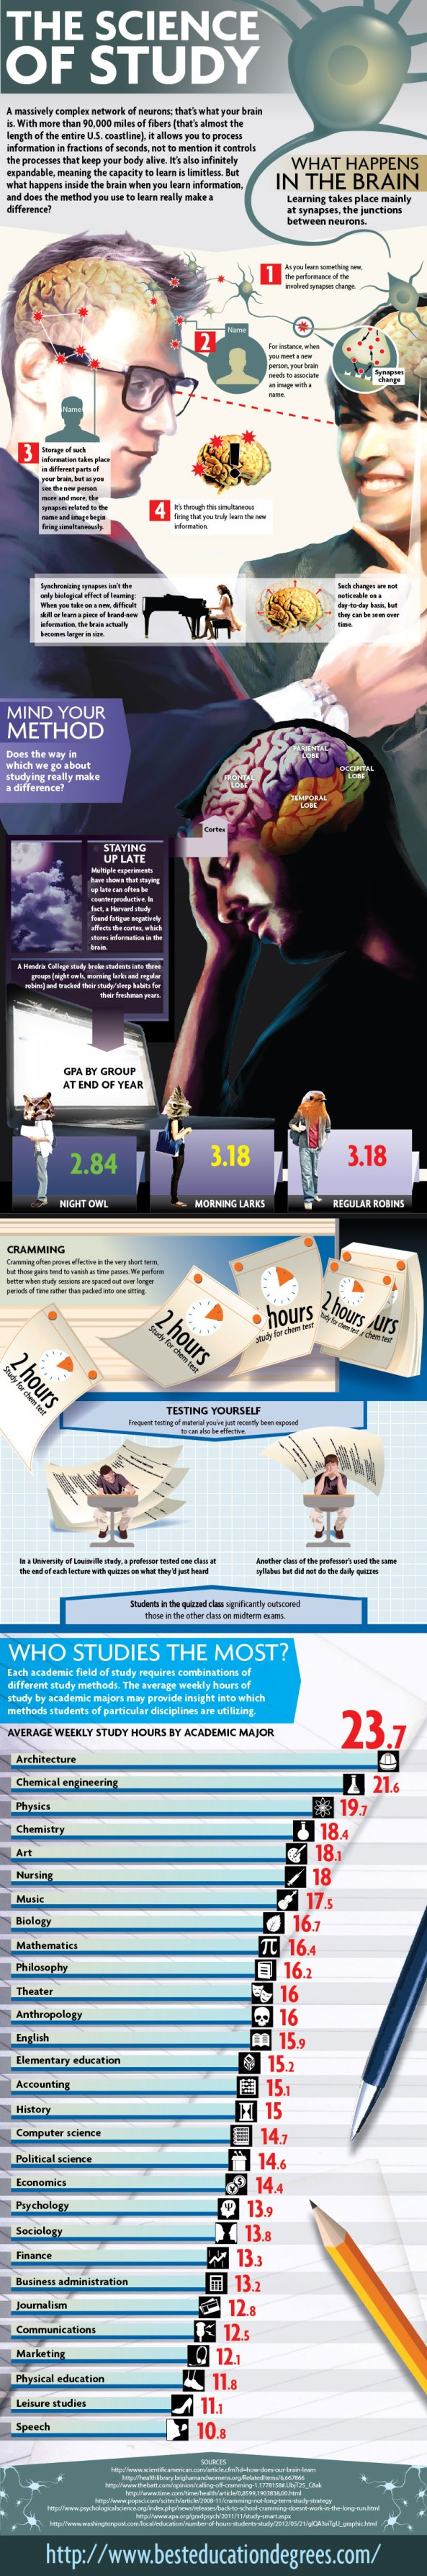 Infographic: The Science of Study